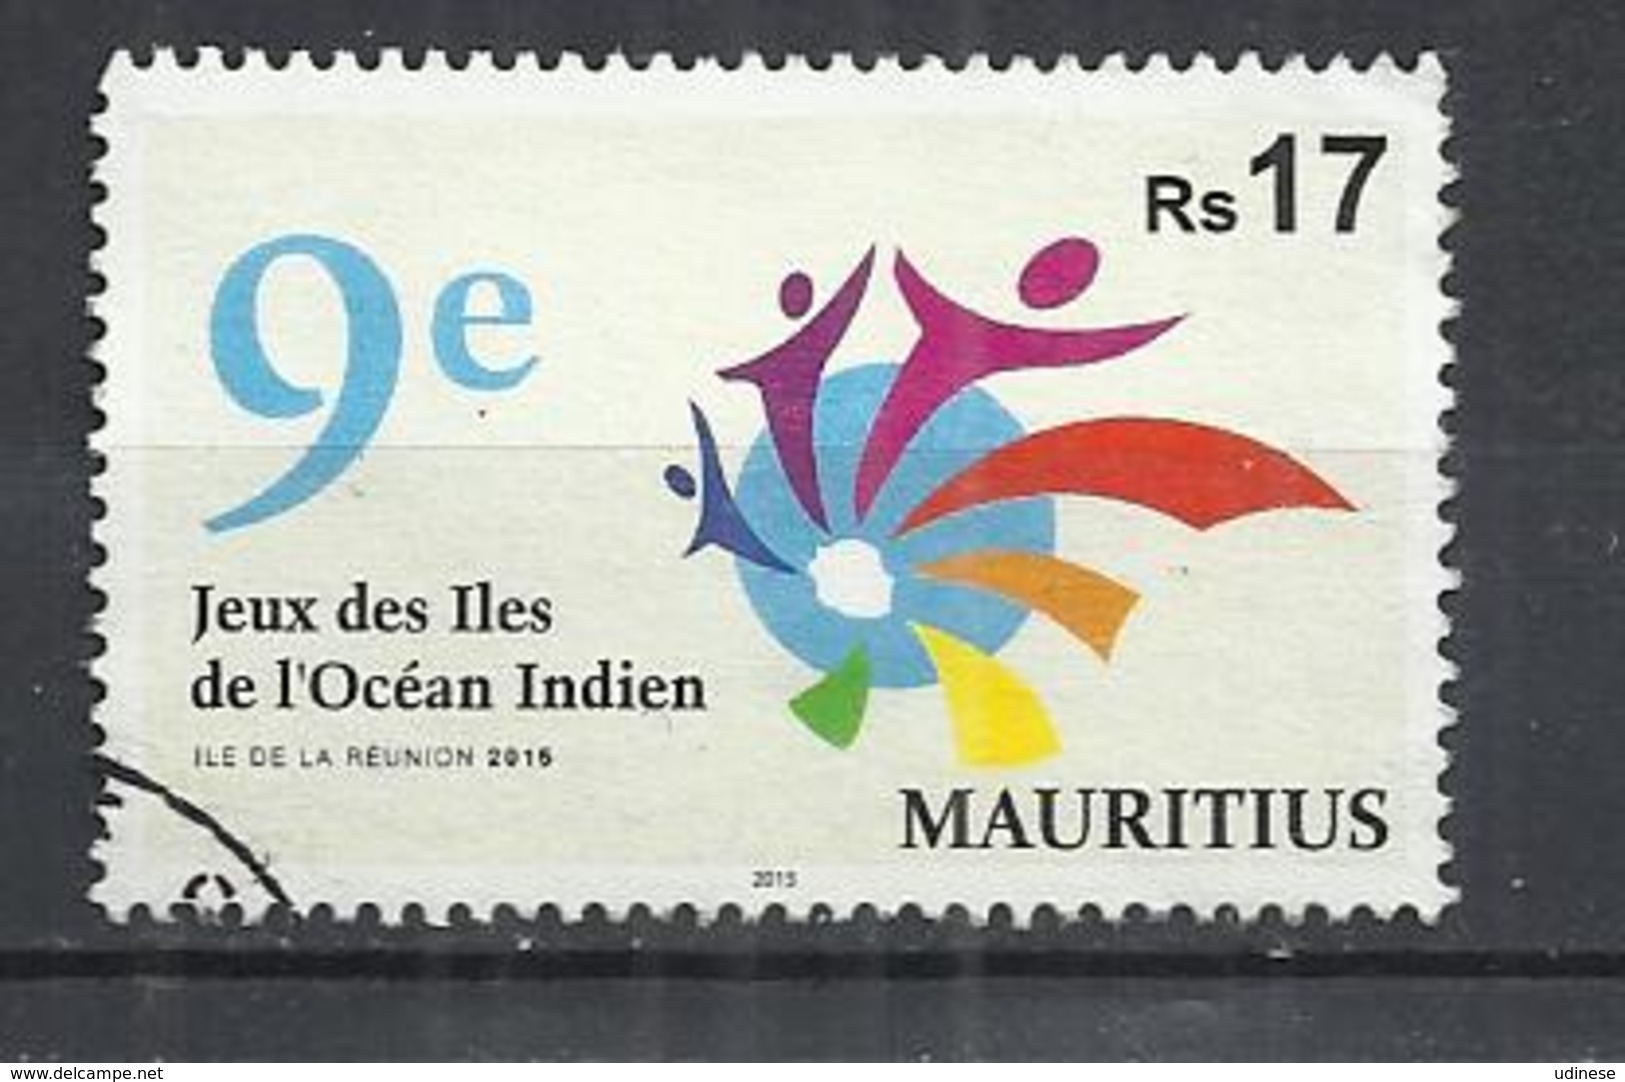 MAURITIUS 2015 - 9th GAMES OF ISLANDS OF THE INDIAN OCEAN - POSTALLY USED OBLITERE GESTEMPELT - Maurice (1968-...)